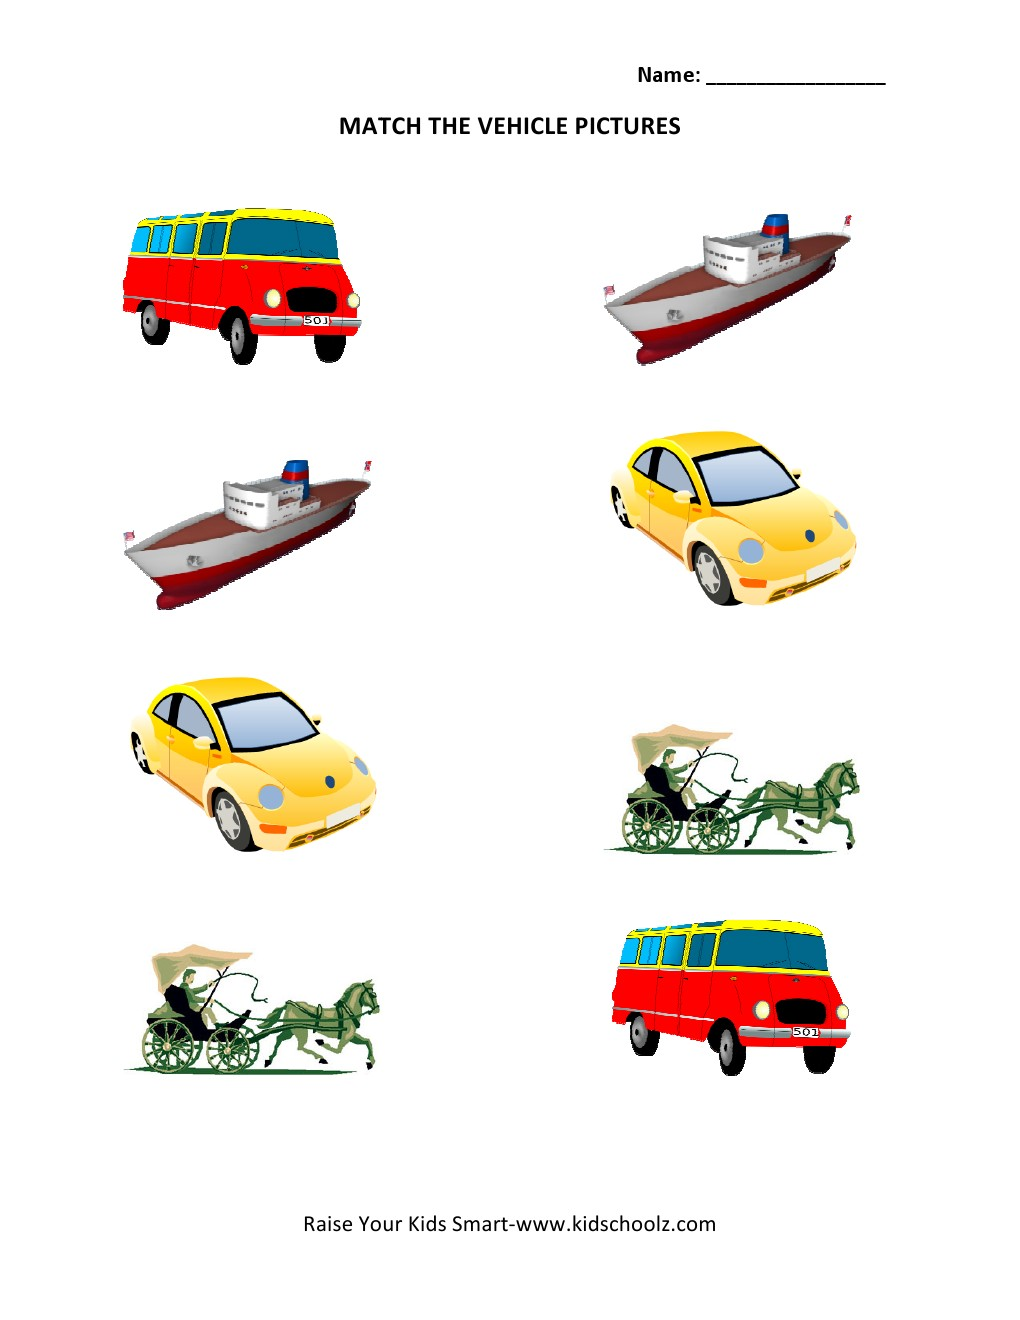 Preschool worksheets vehicles : Matching Vehicles Worksheets